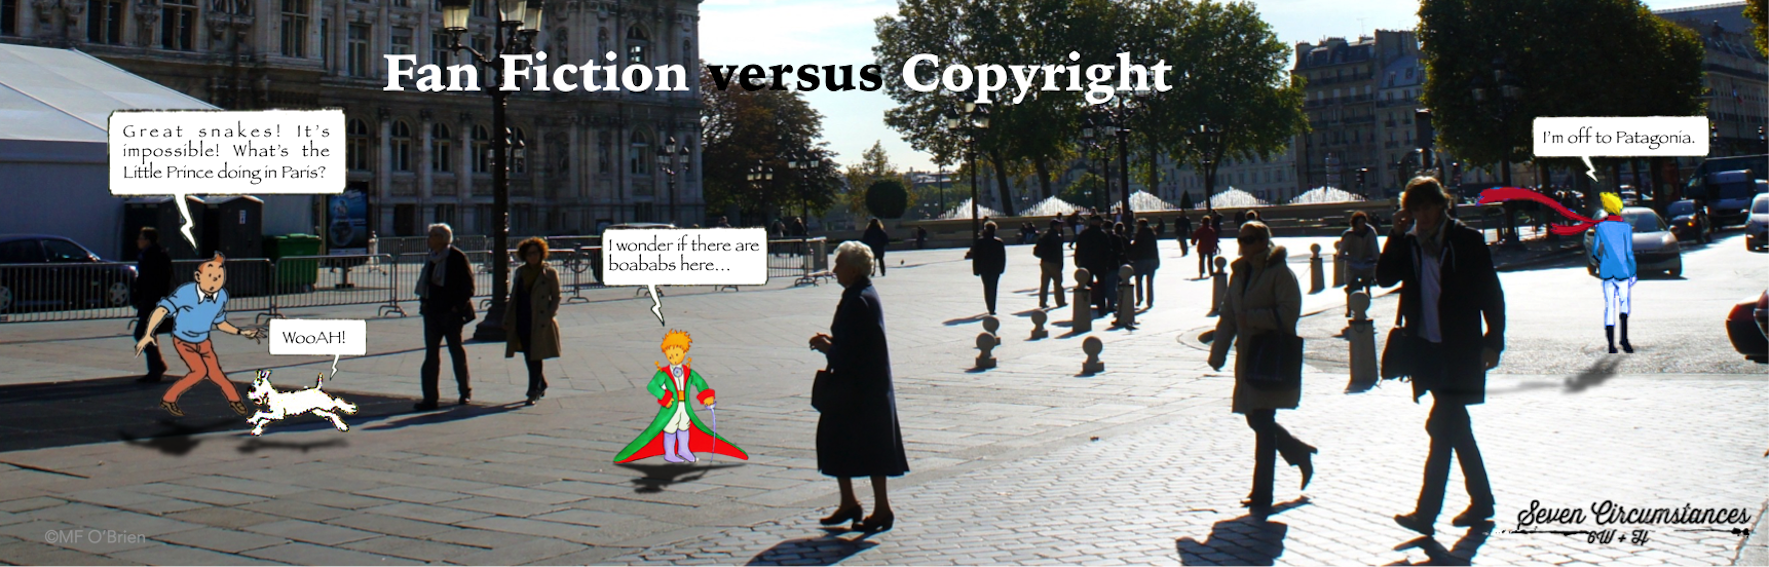 """The header for this and other posts contain images from both original and fan fiction/sequels by other authors. In this case, Tintin and Snowy (left) come from Rodier's version, the Little Prince (adapted, centre) comes from the original by De Saint-Exupéry, and the Young Prince (right) comes from A.G. Roemmers' version. All three images have been used under the terms of """"fair use"""": """"In its most general sense, a fair use is any copying of copyrighted material done for a limited and 'transformative' purpose, such as to comment upon, criticize, or parody a copyrighted work."""" (Rich Stim, Stanford University Libraries). The main image, of Paris, France, is by M.F. O'Brien, used with permission."""